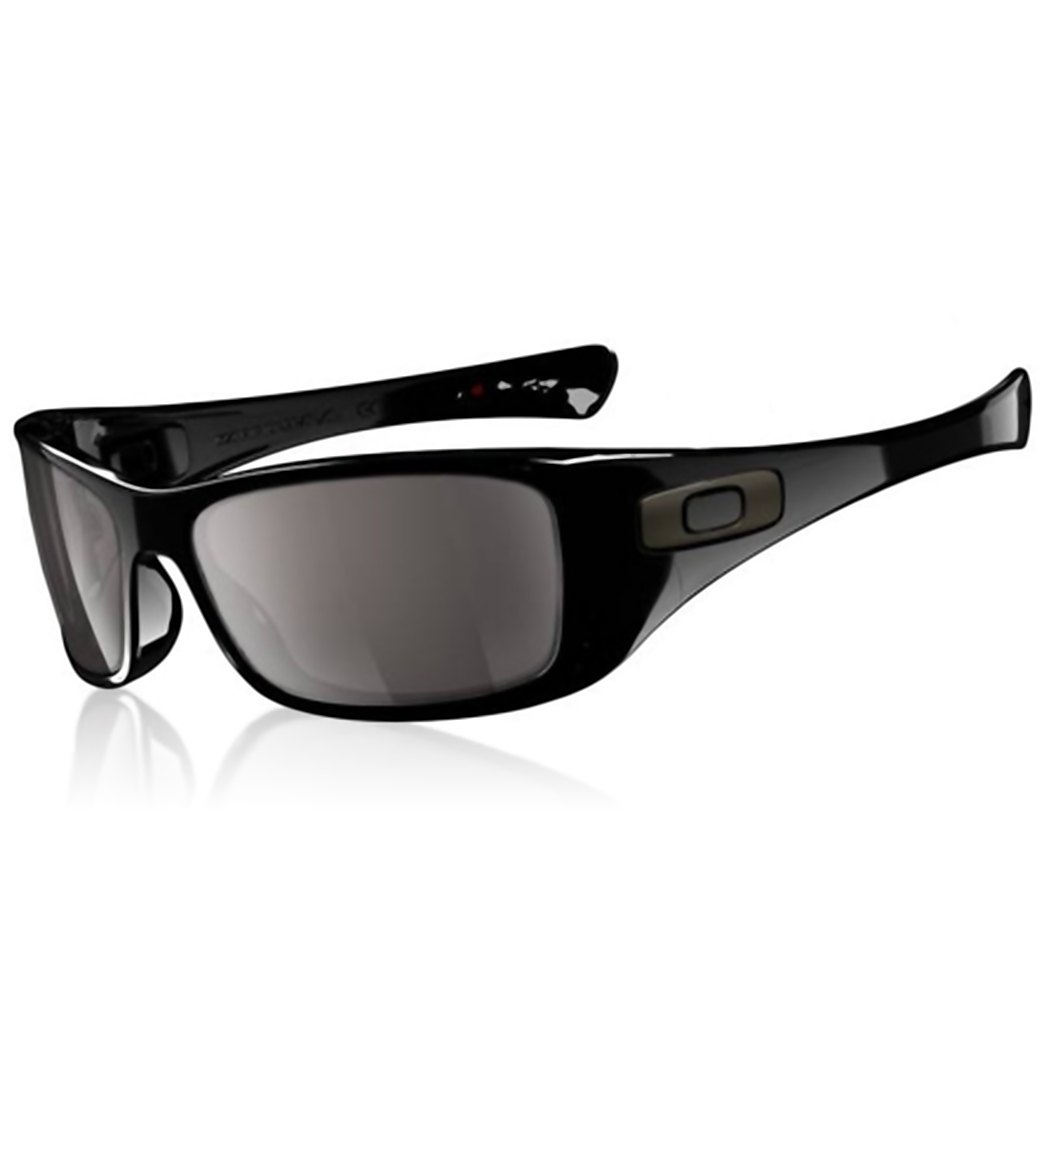 6b41ba3ac5e83 Oakley Bruce Irons Signature Hijinx Sunglasses at SwimOutlet.com - Free  Shipping